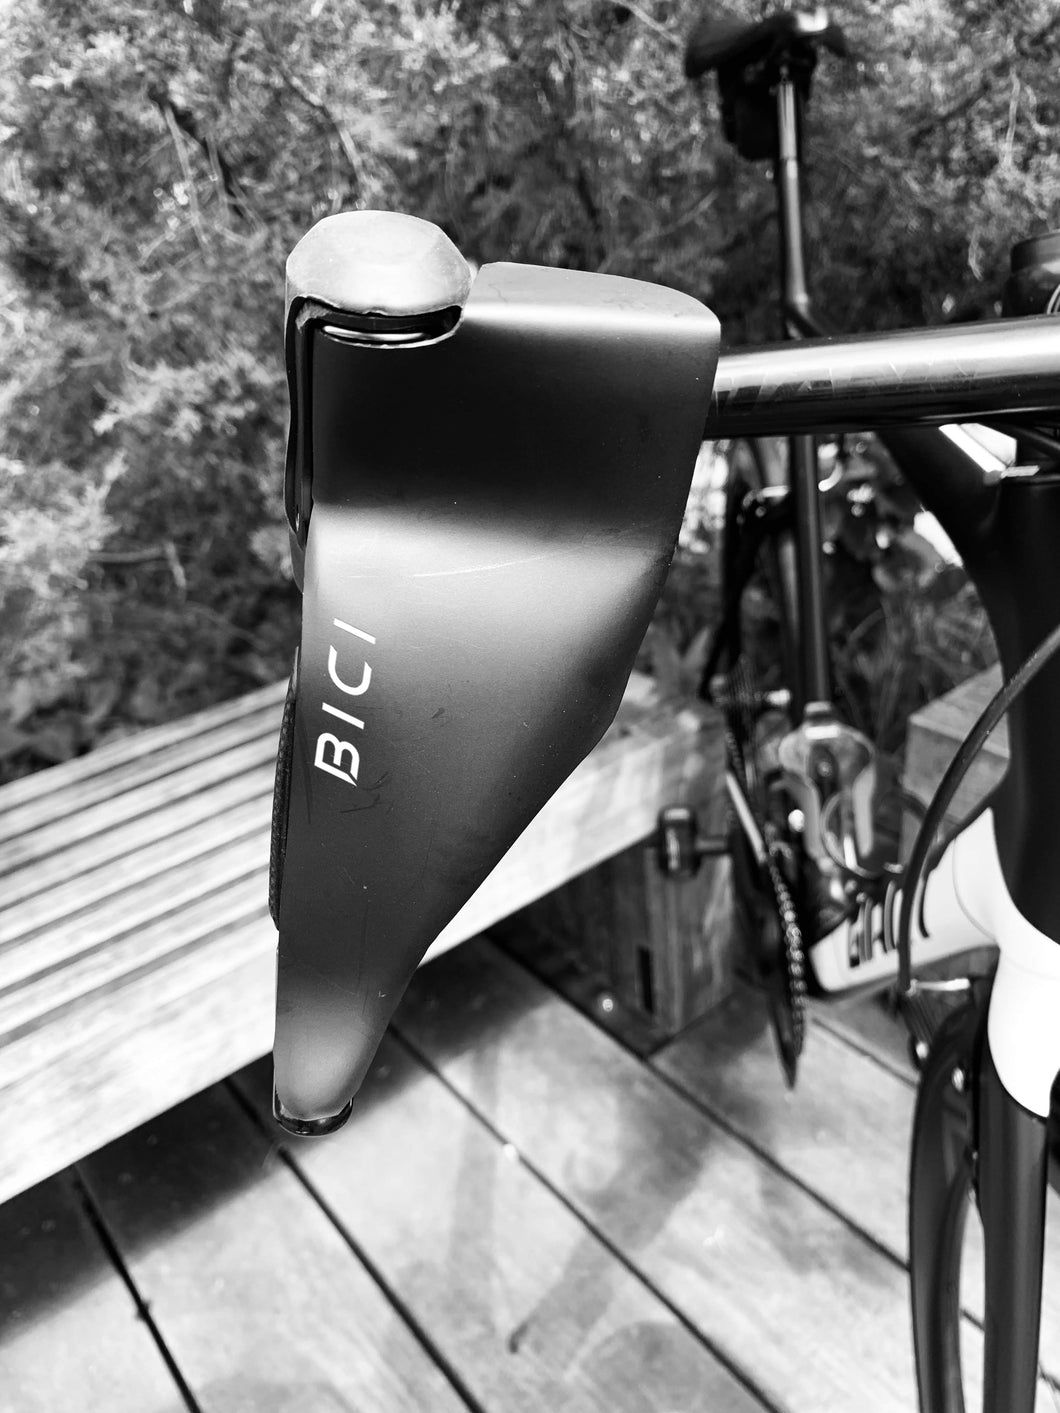 Close up of road bike handlebars with the newest must have winter cycling accessory, The Bici Shield, attached to its brake lever. This streamlined black abs hand protector shields a riders hands from the cold while cycling in the winter.